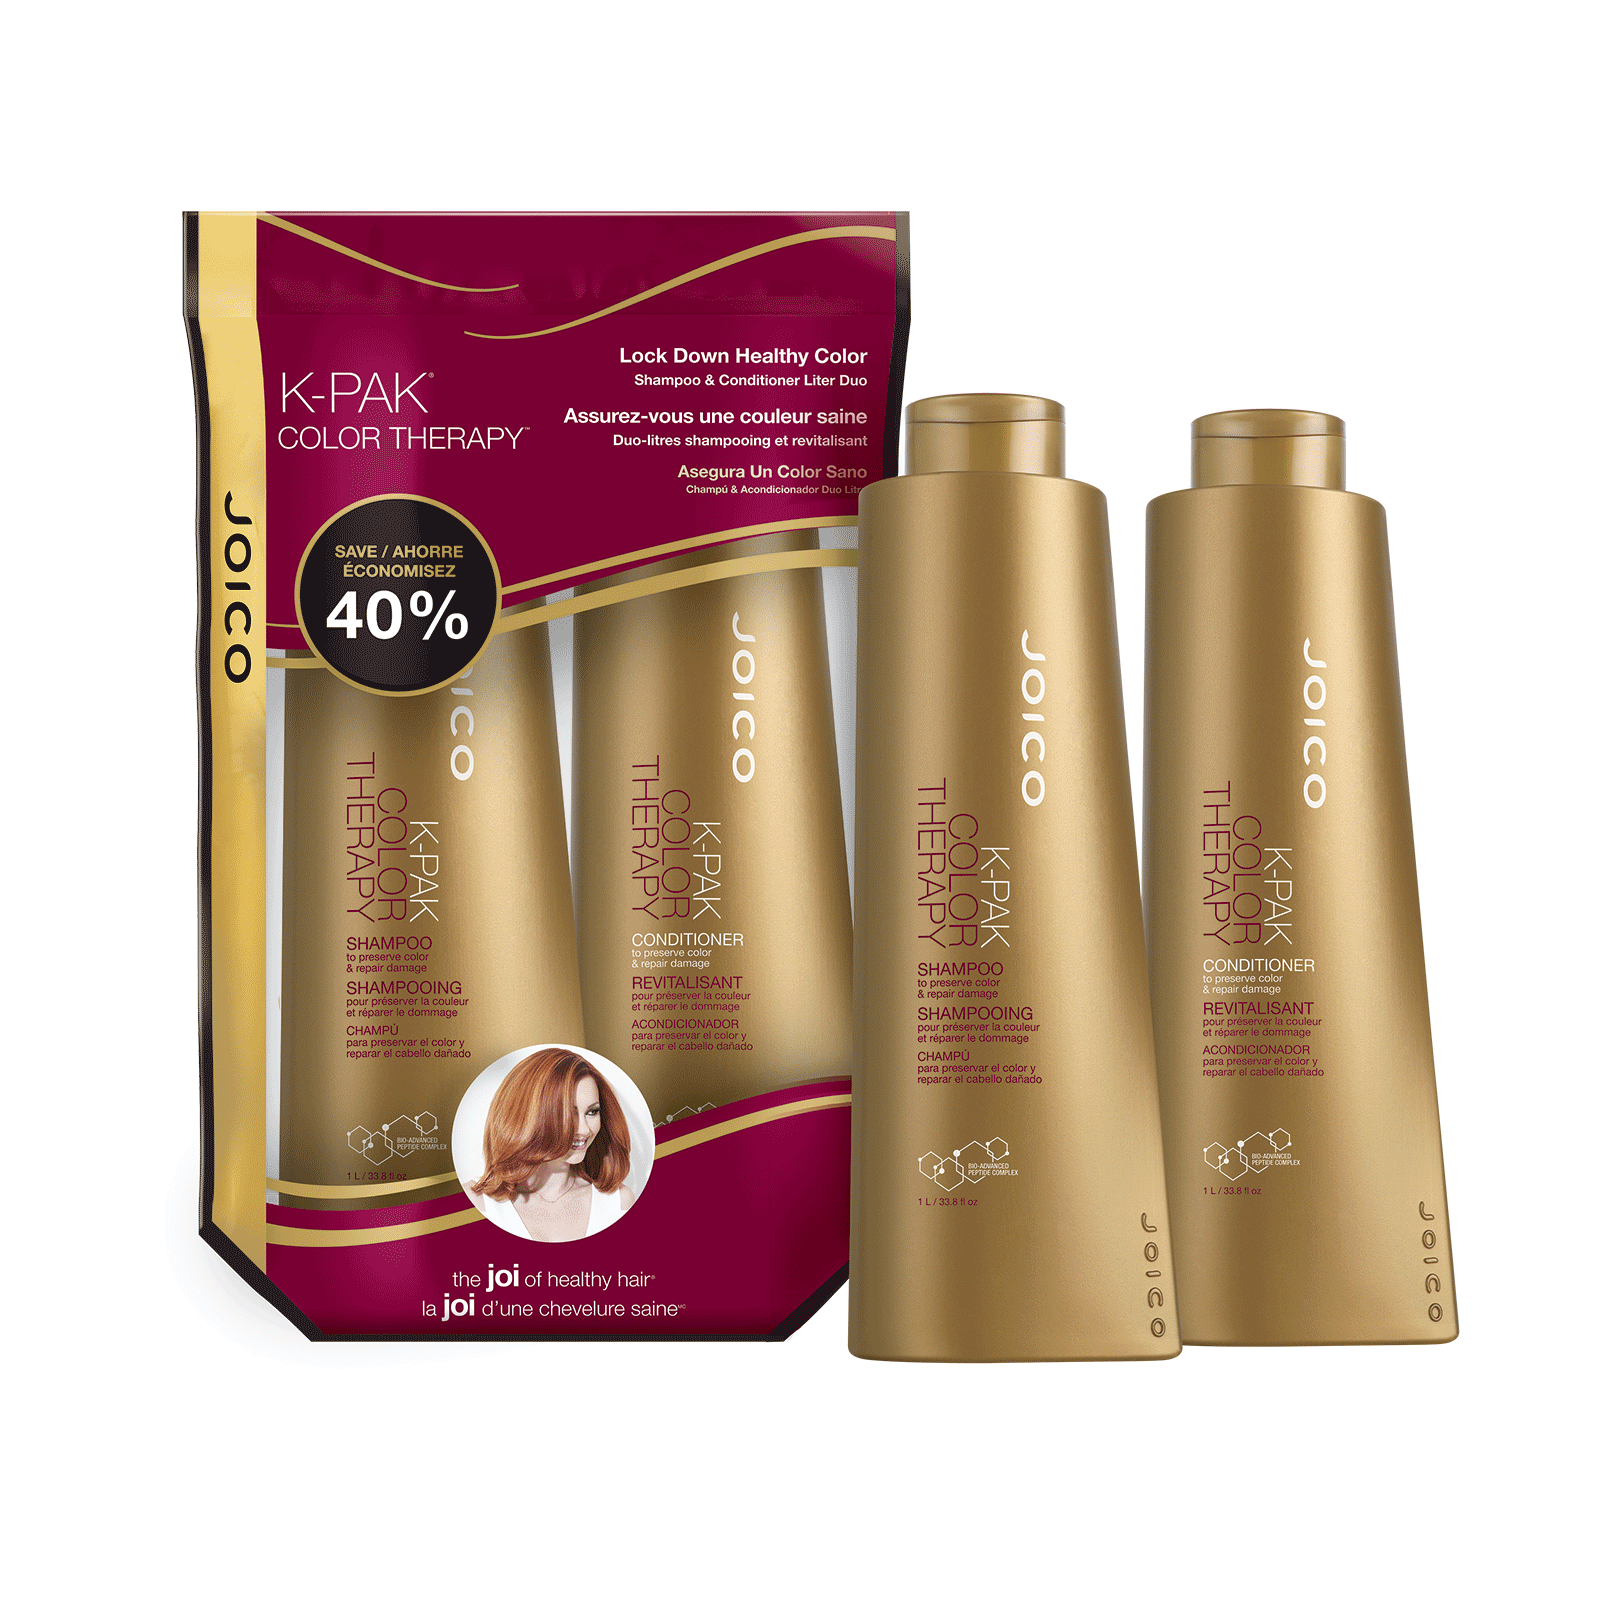 K-Pak Color Therapy Shampoo, Conditioner Liter Duo